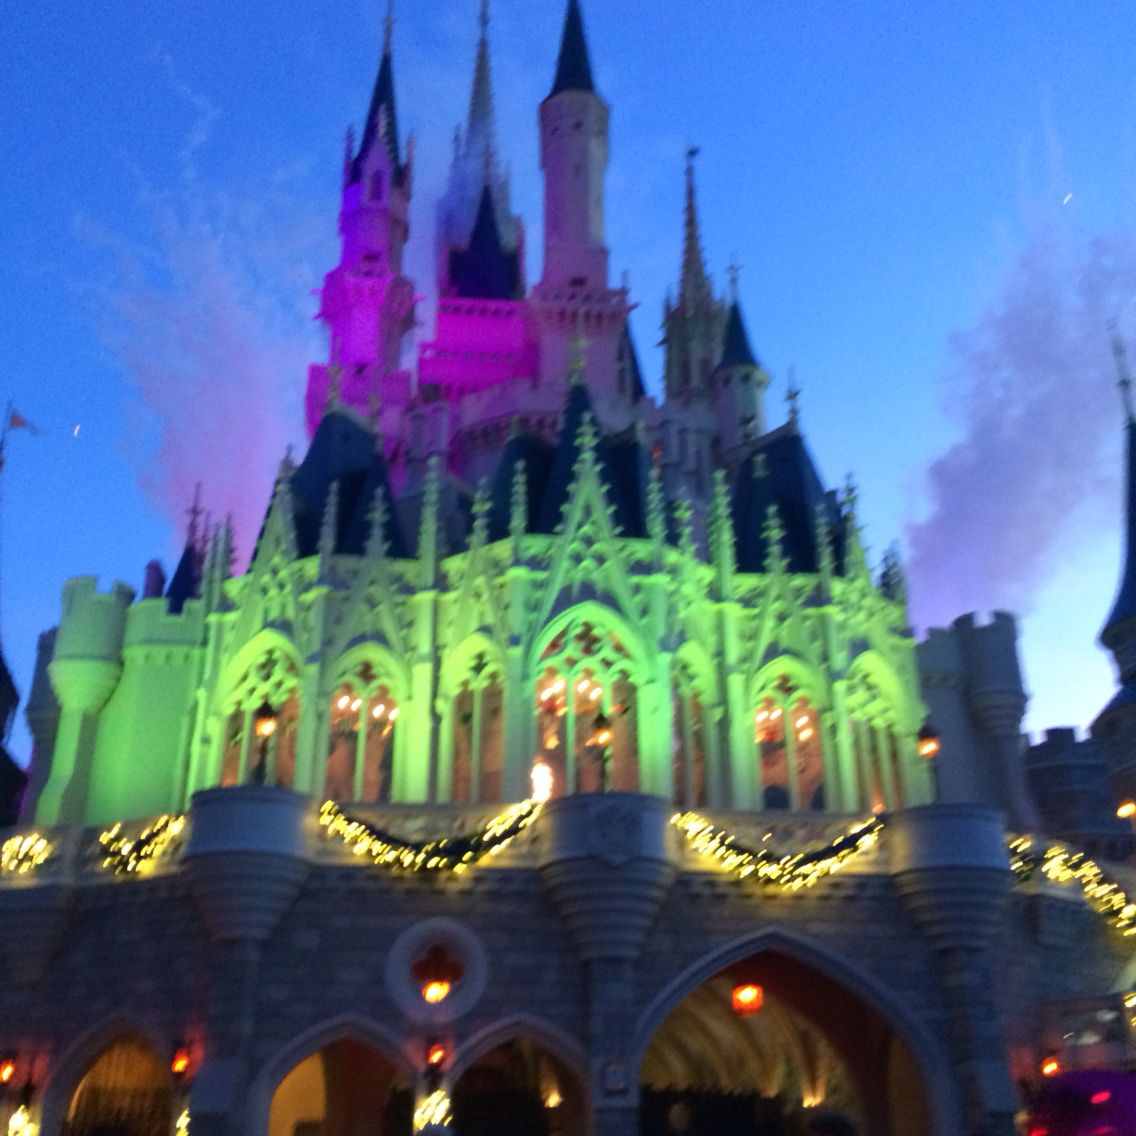 Just another disney pic